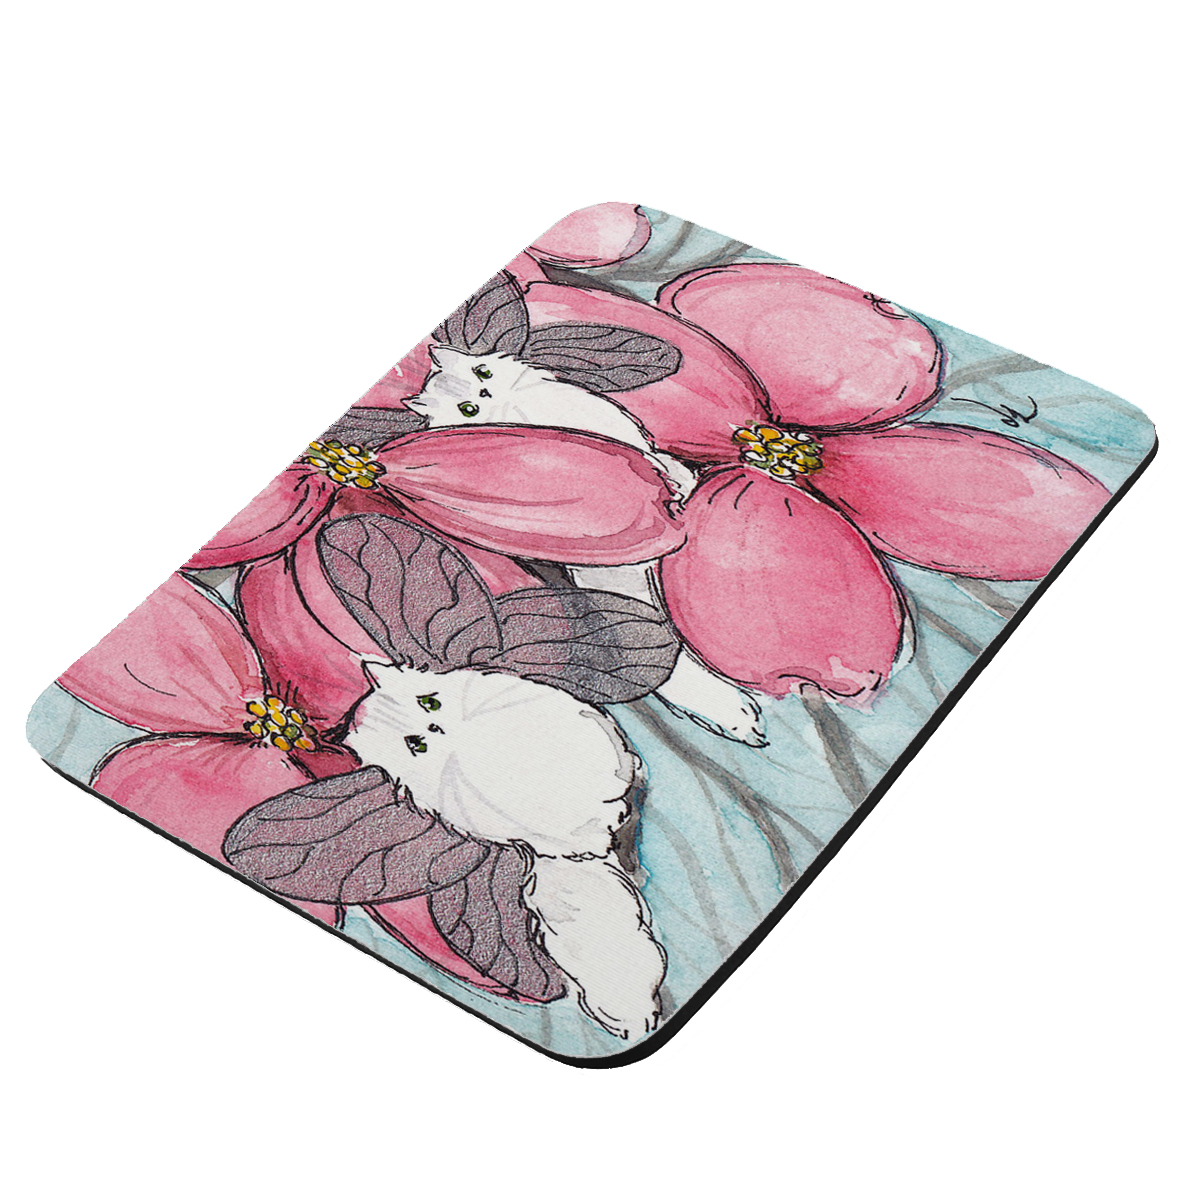 Chinchilla Silver Persian Kitty Fairies with Pink Dogwood Cat Art by Denise Every - KuzmarK Mousepad / Hot Pad / Trivet